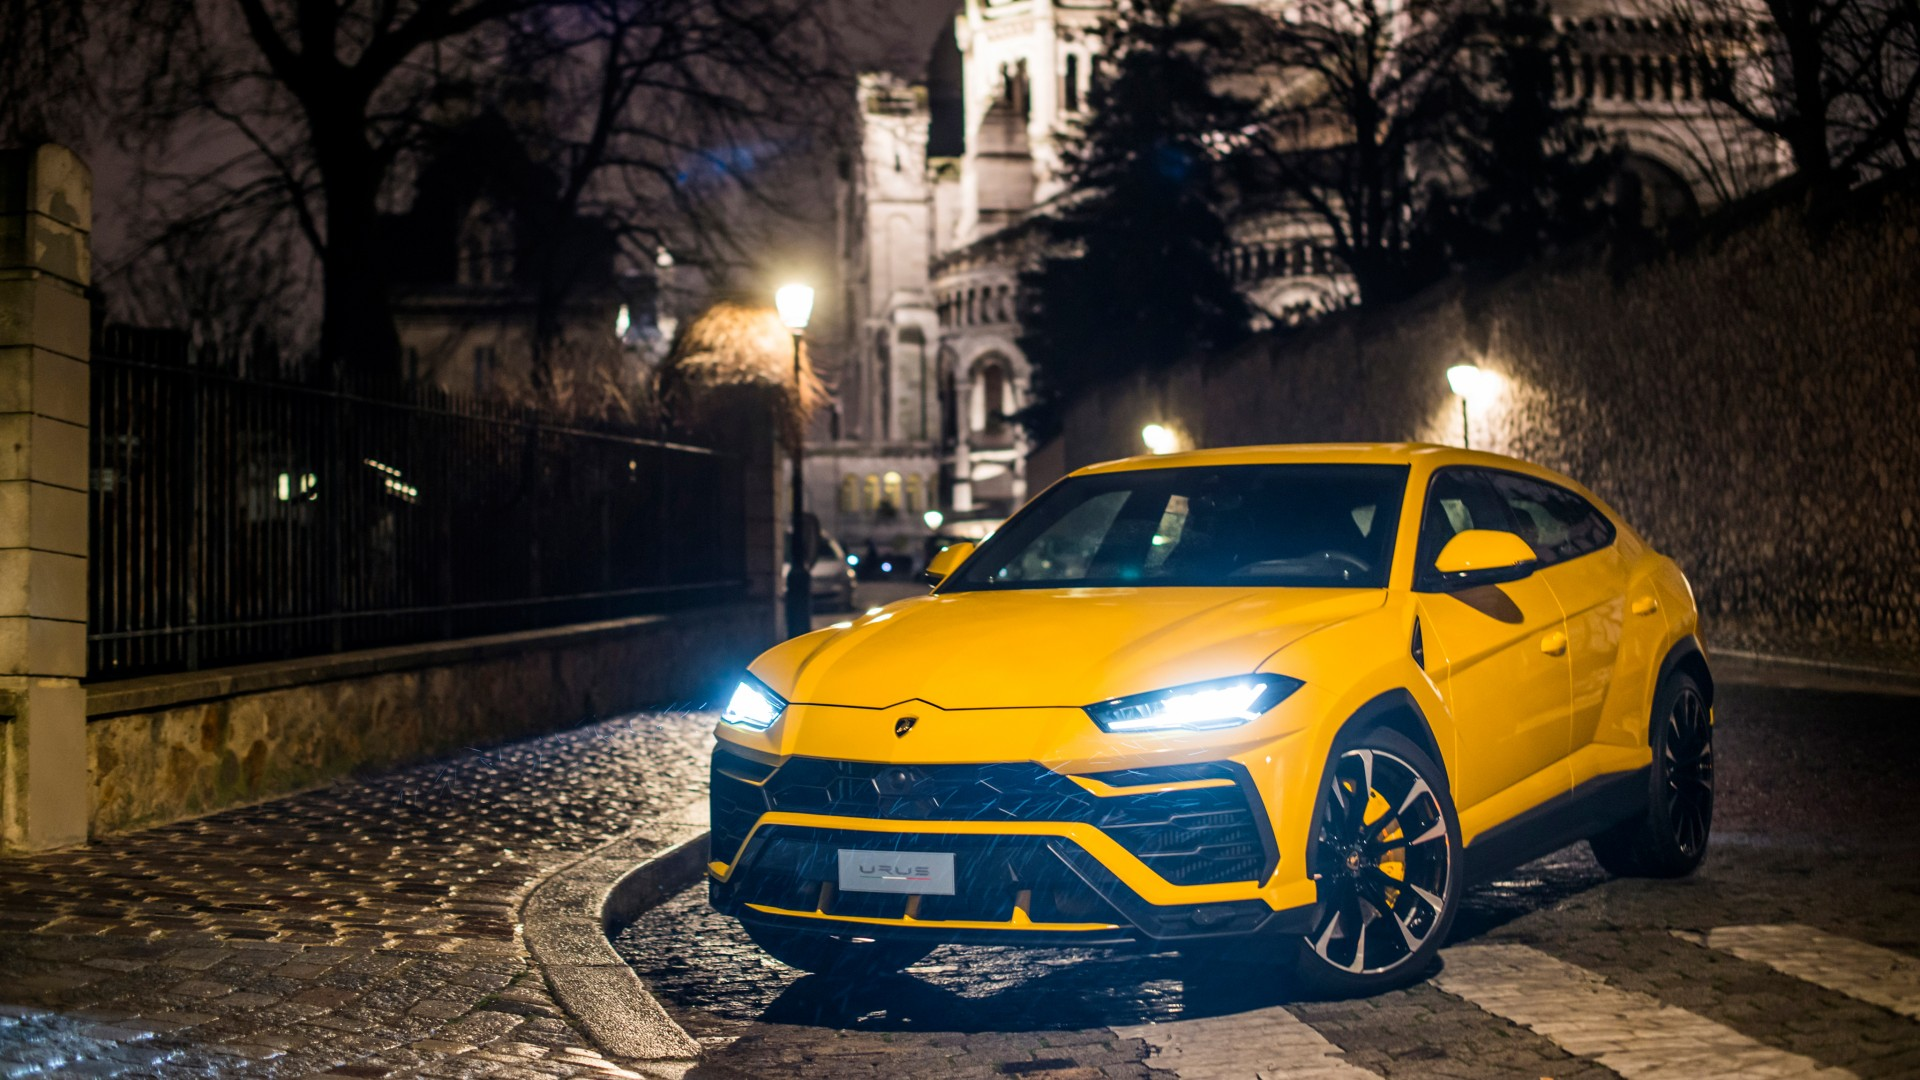 Cars Hd Wallpapers 1080p Lamborghini Lamborghini Urus 2018 4k Wallpaper Hd Car Wallpapers